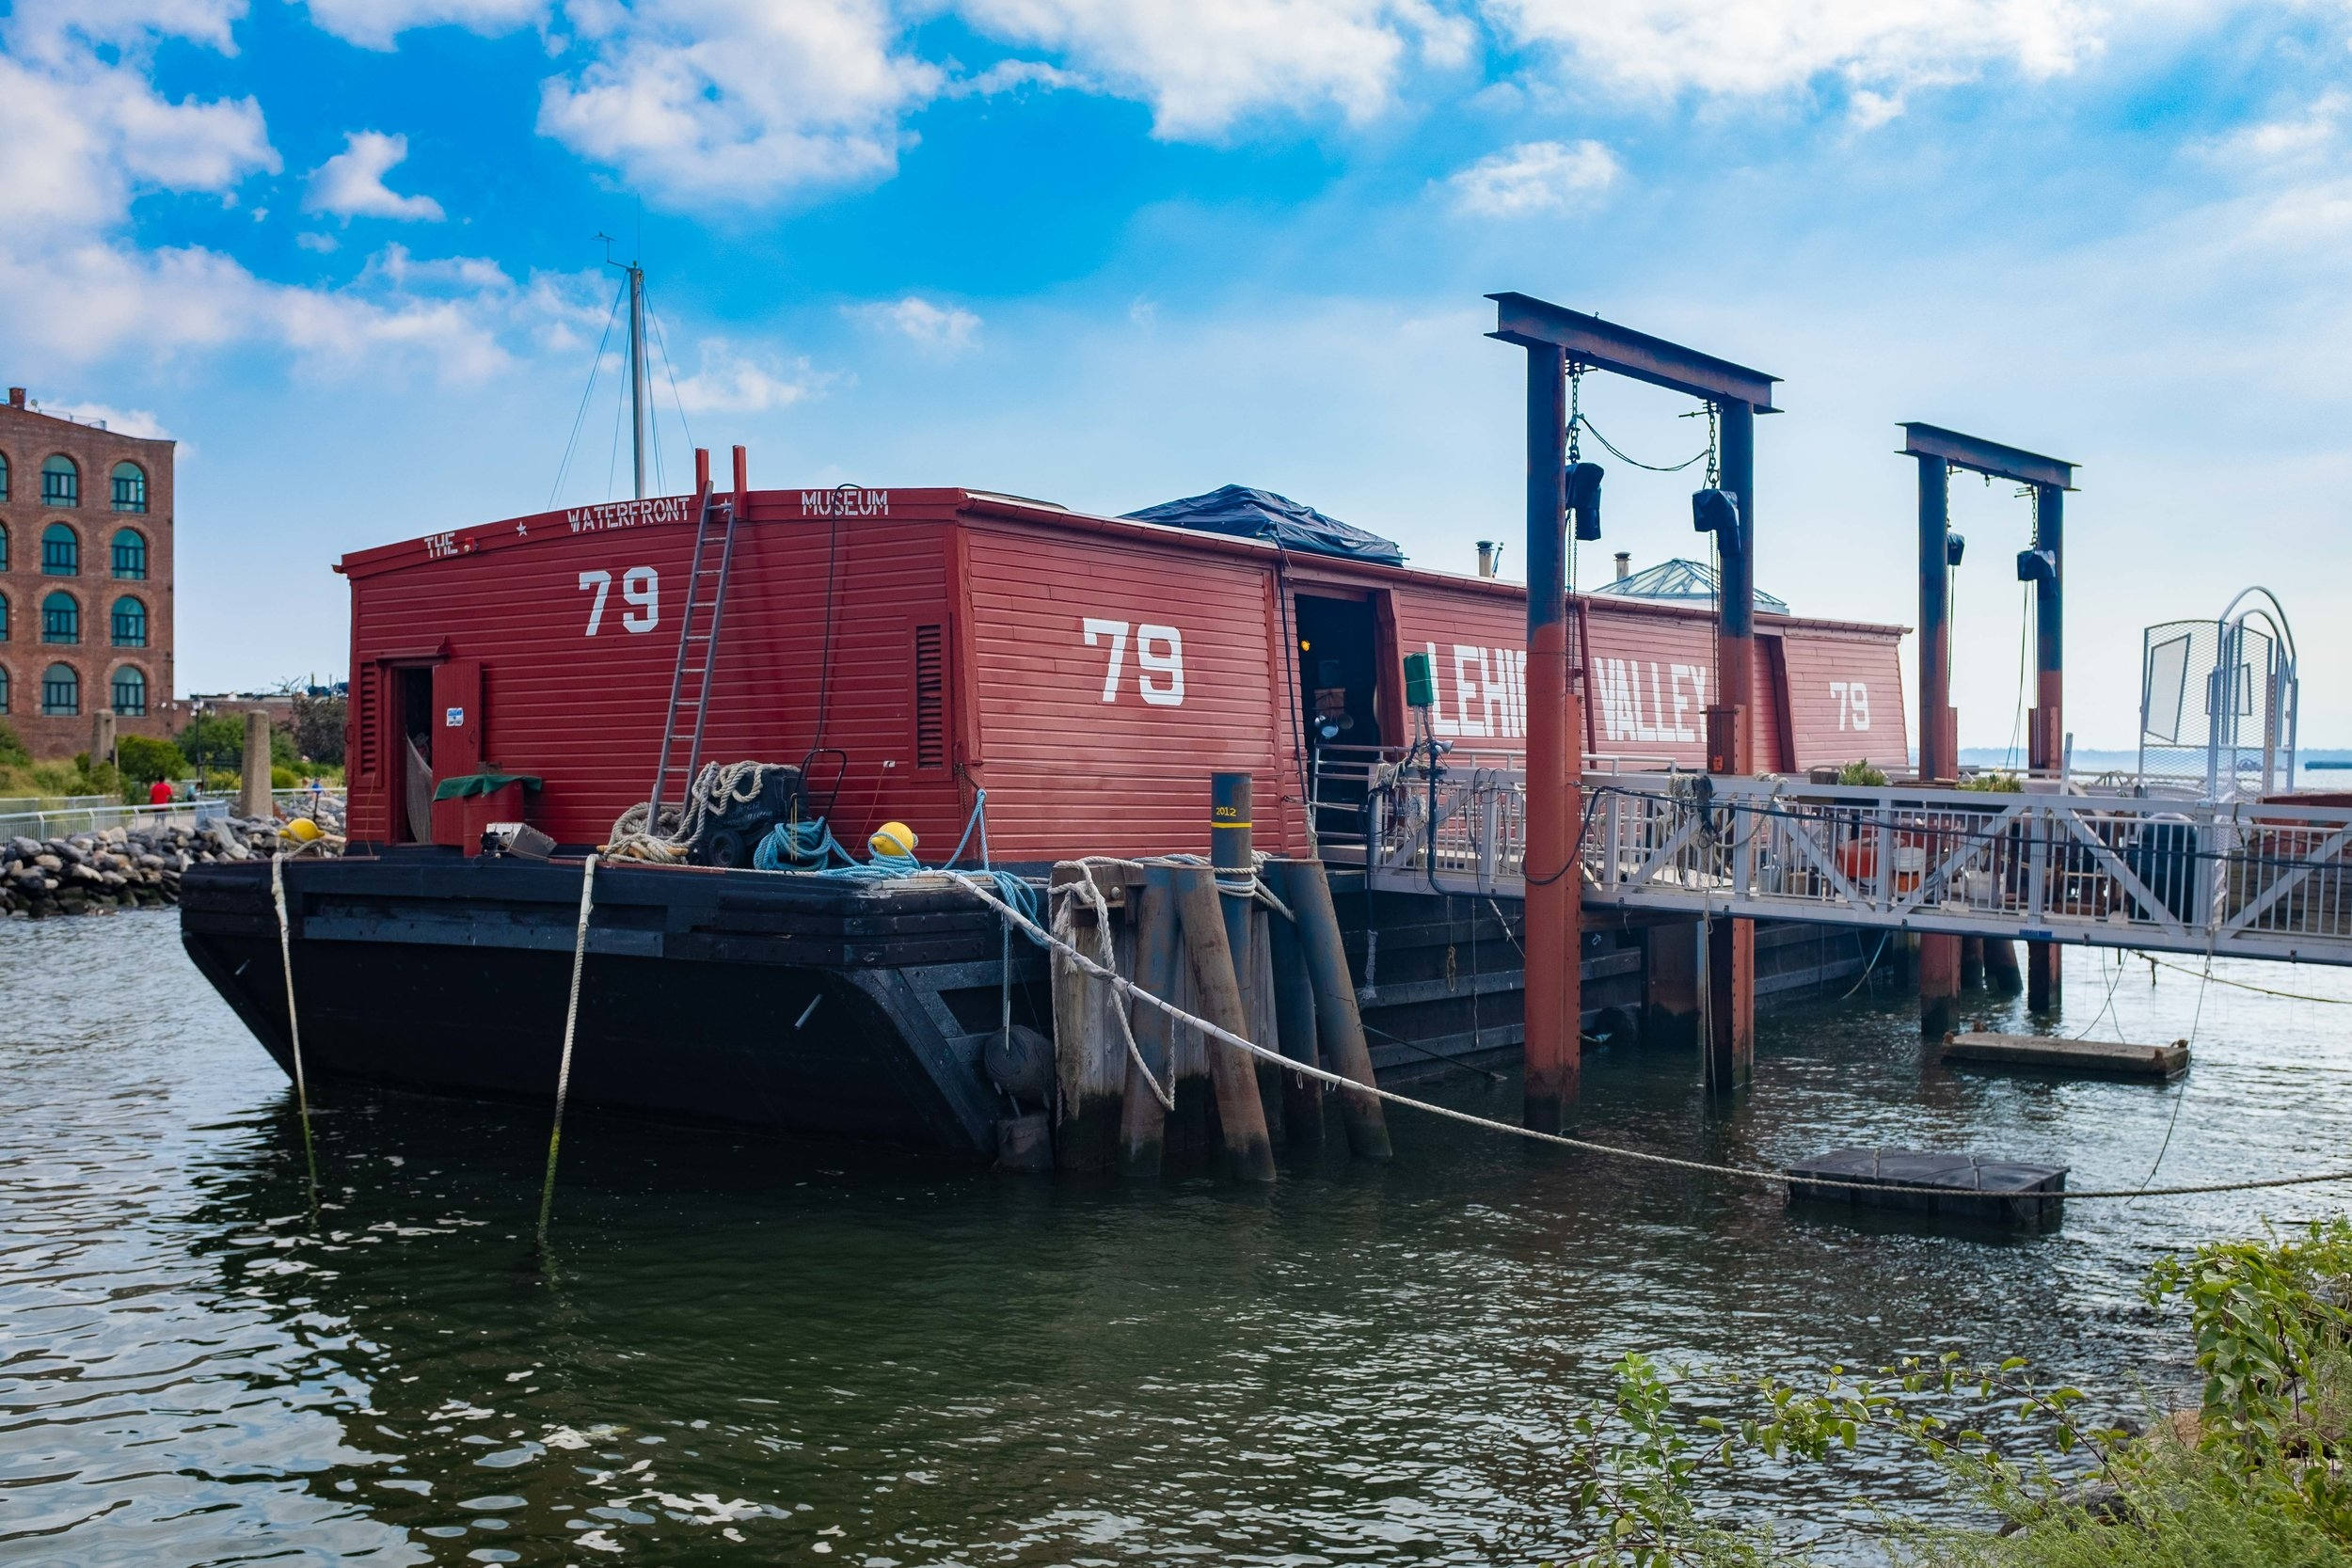 The Waterfront Museum & Barge in Red Hook, Brooklyn.